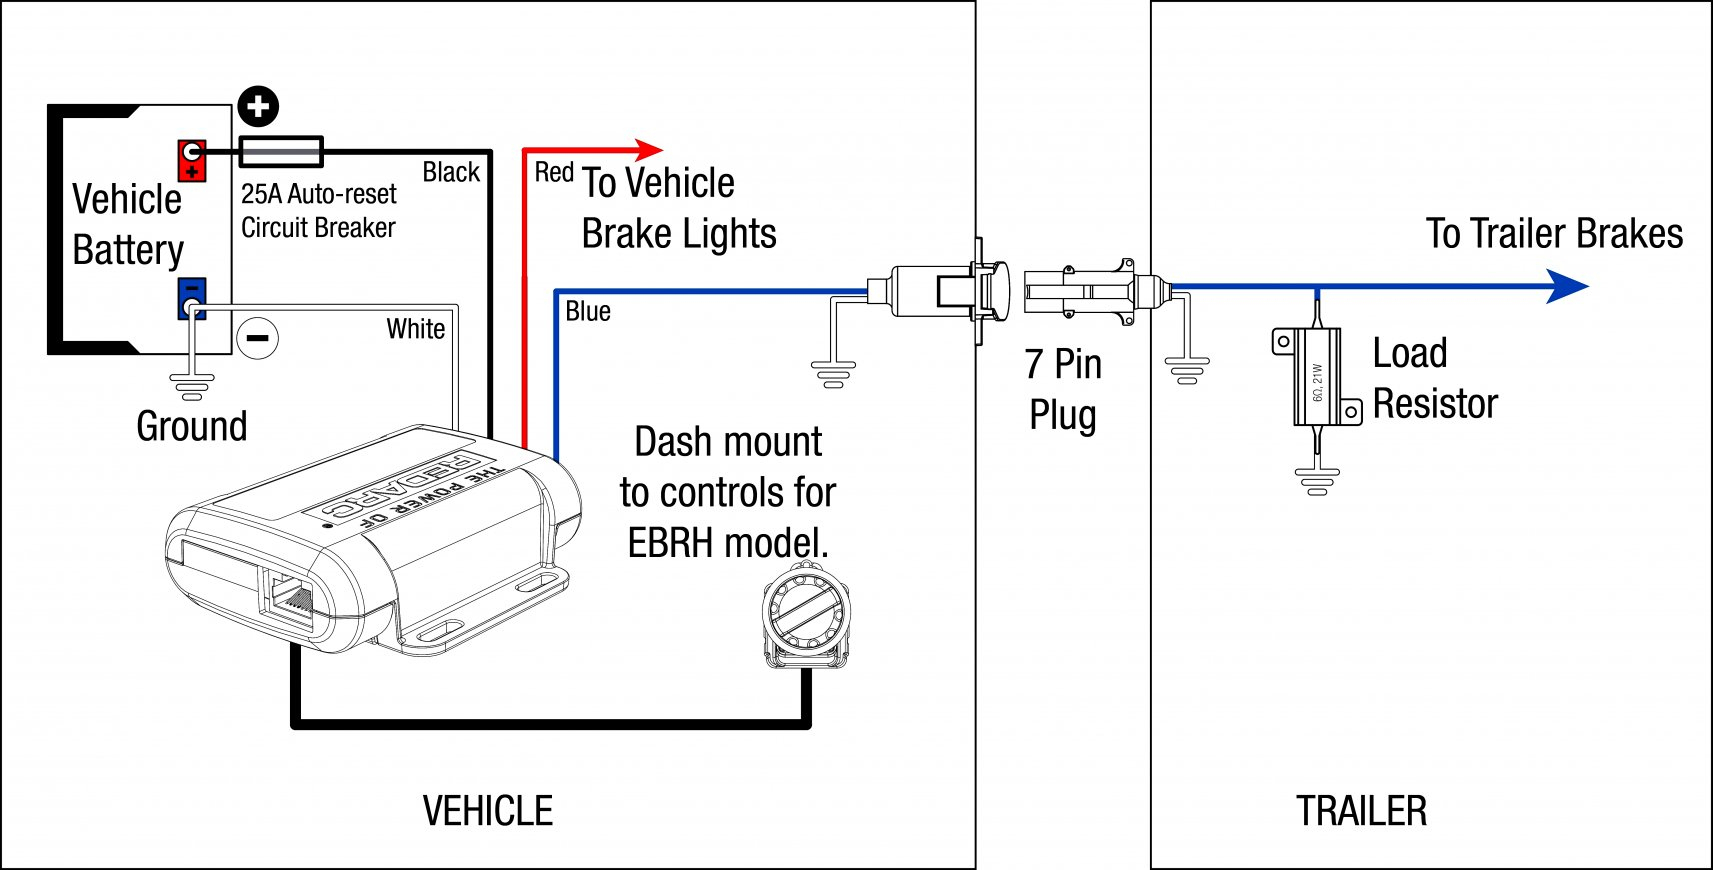 Elegant Of Impulse Trailer Brake Controller Wiring Diagram Hopkins - Wiring Diagram For Trailer With Electric Brakes